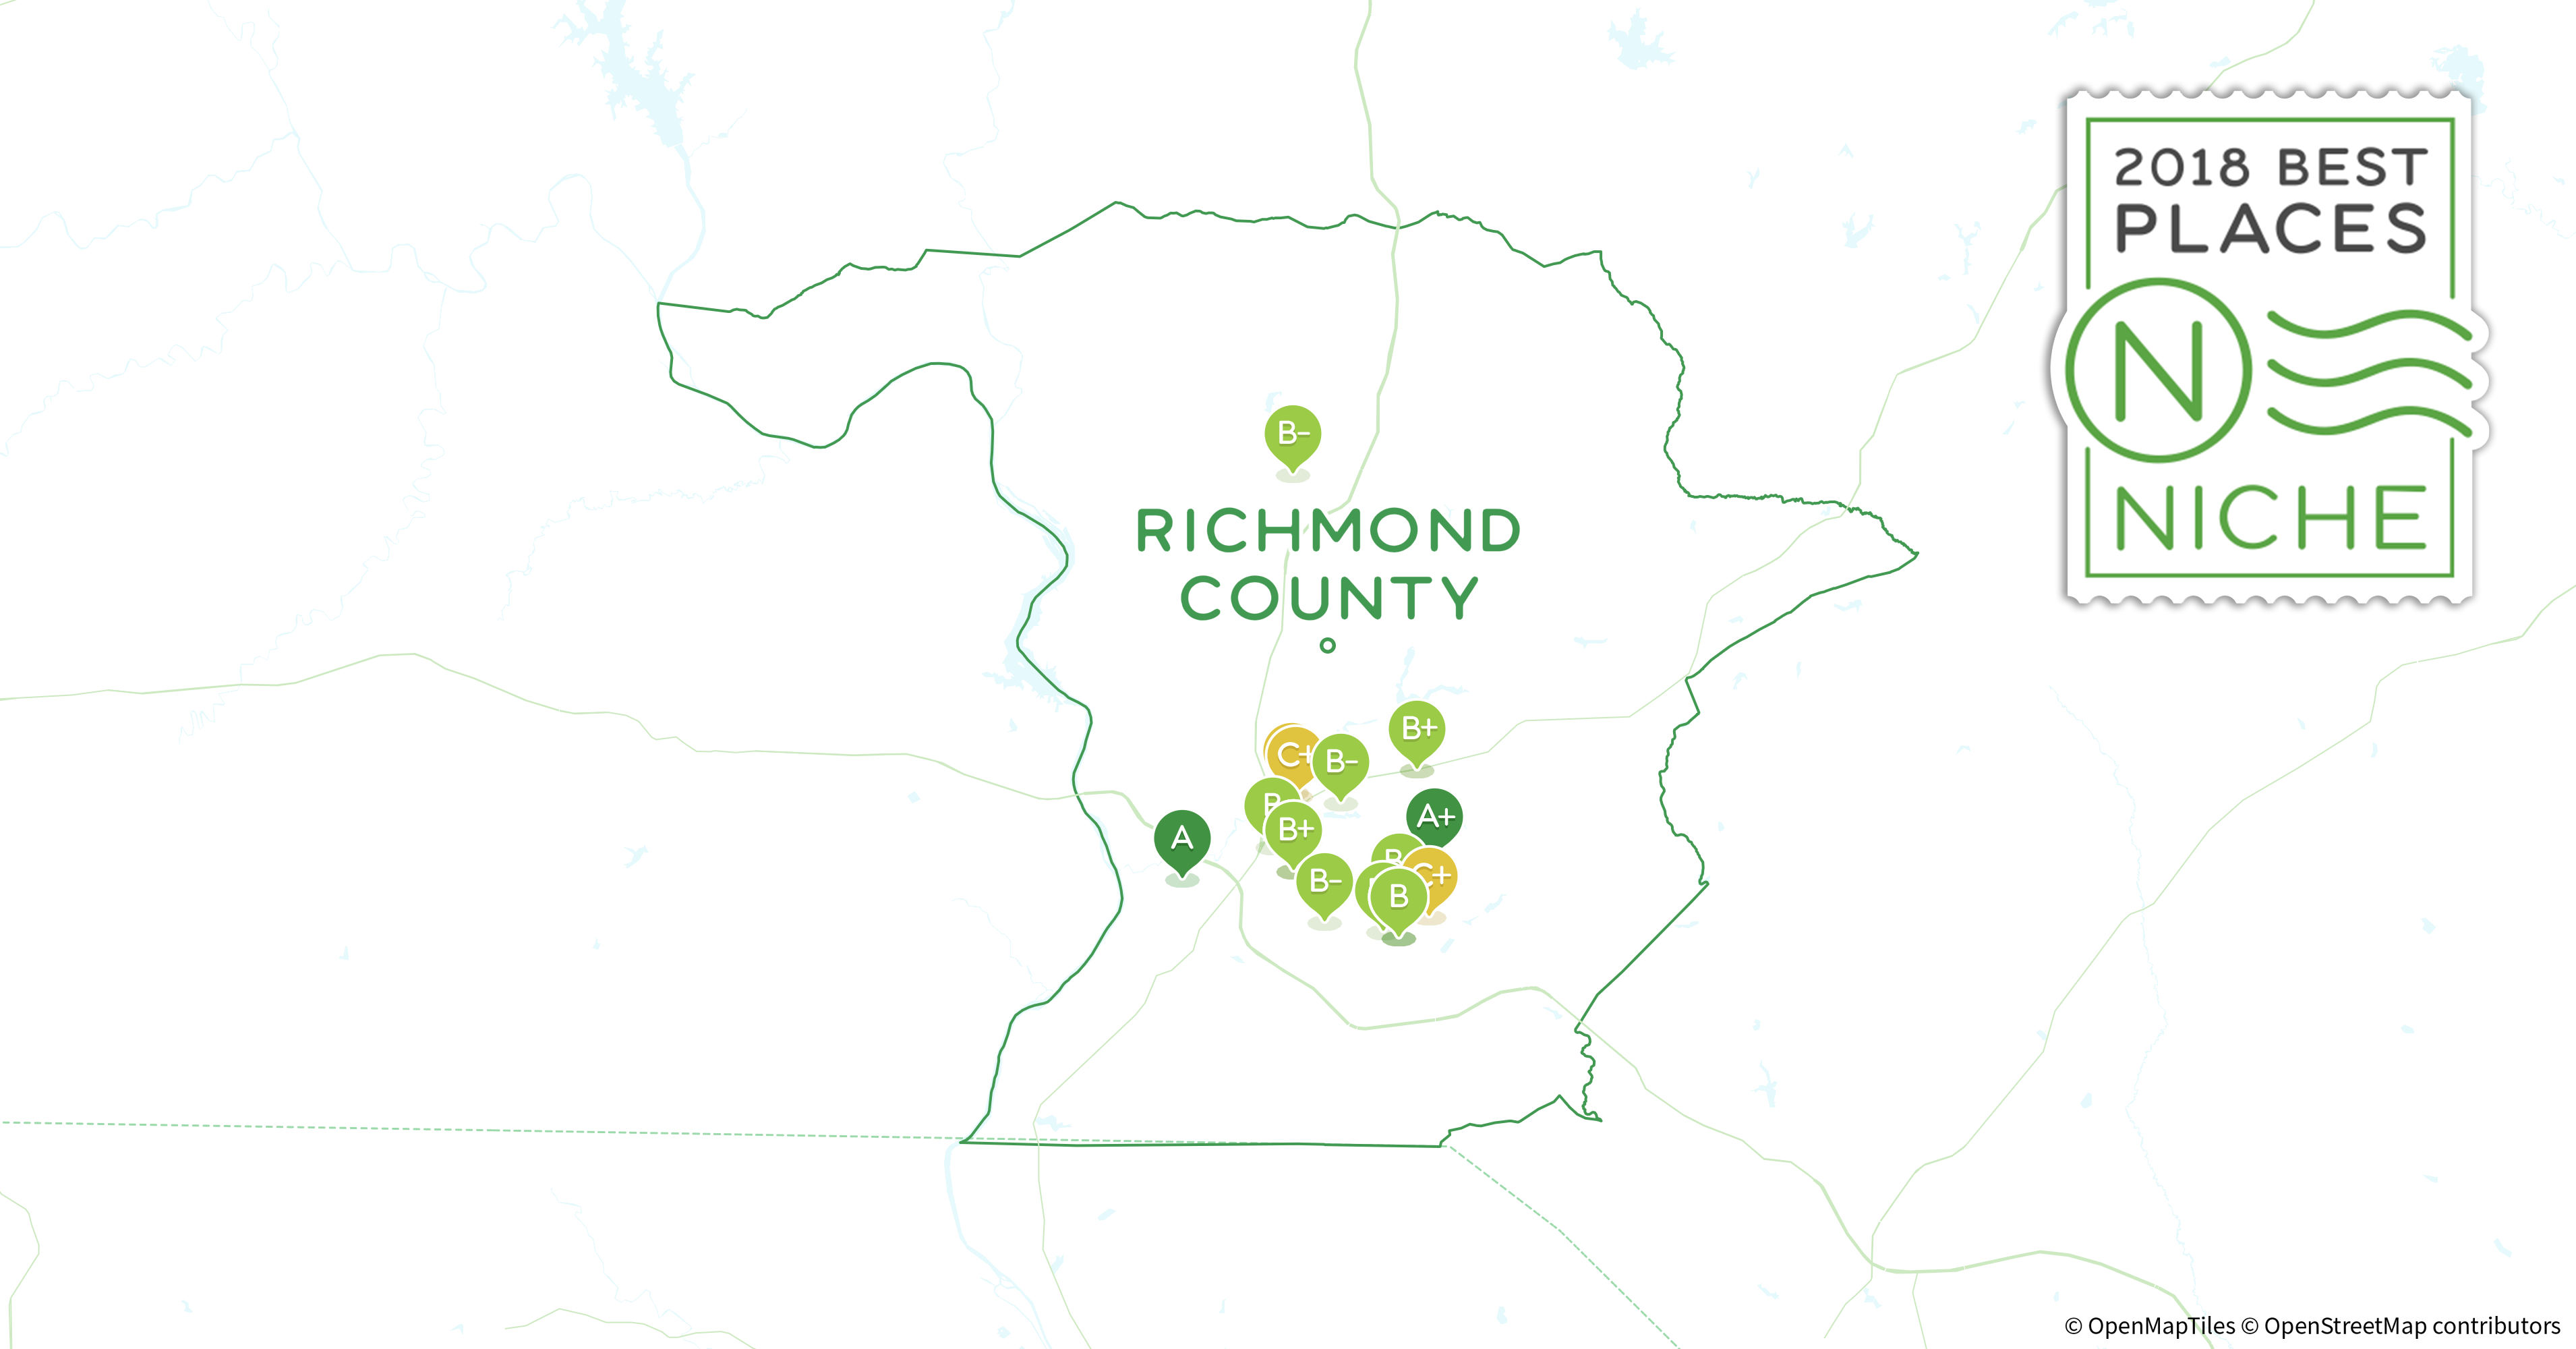 Richmond County Nc Map.2018 Safest Places To Live In Richmond County Nc Niche